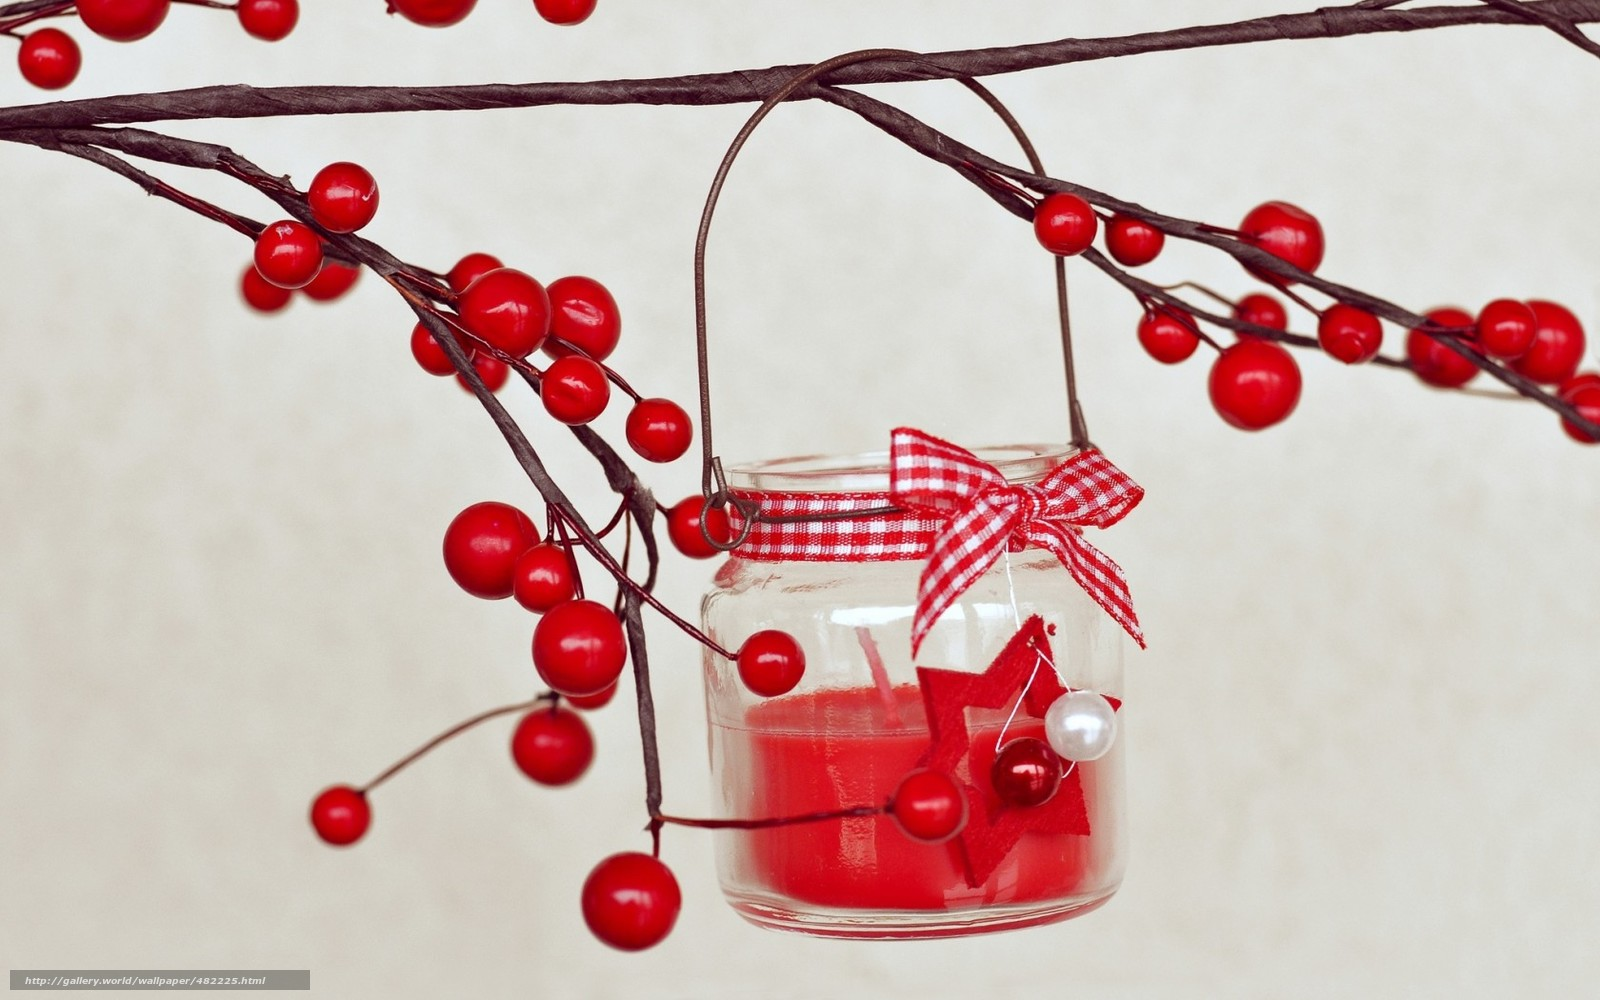 Download wallpaper candle,  bow,  branch,  Berries free desktop wallpaper in the resolution 1680x1050 — picture №482225